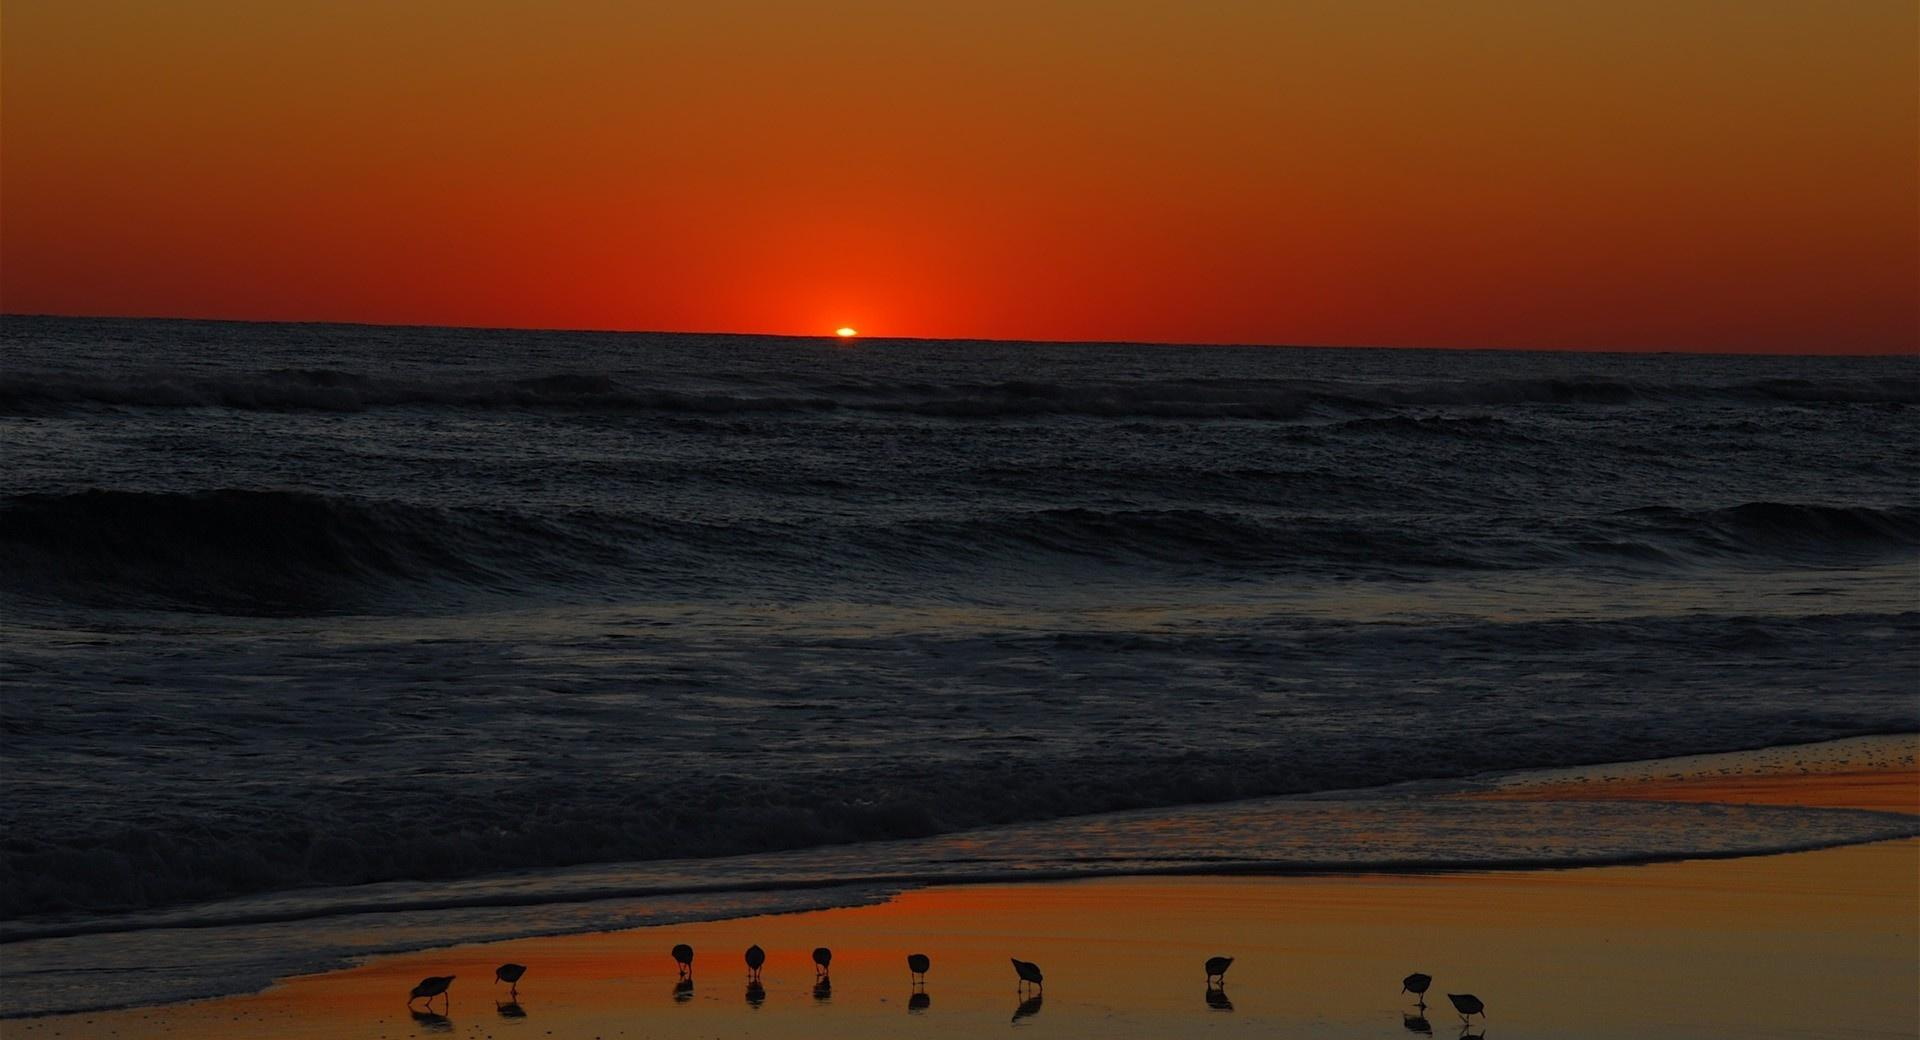 Seagulls On Beach At Sunset wallpapers HD quality